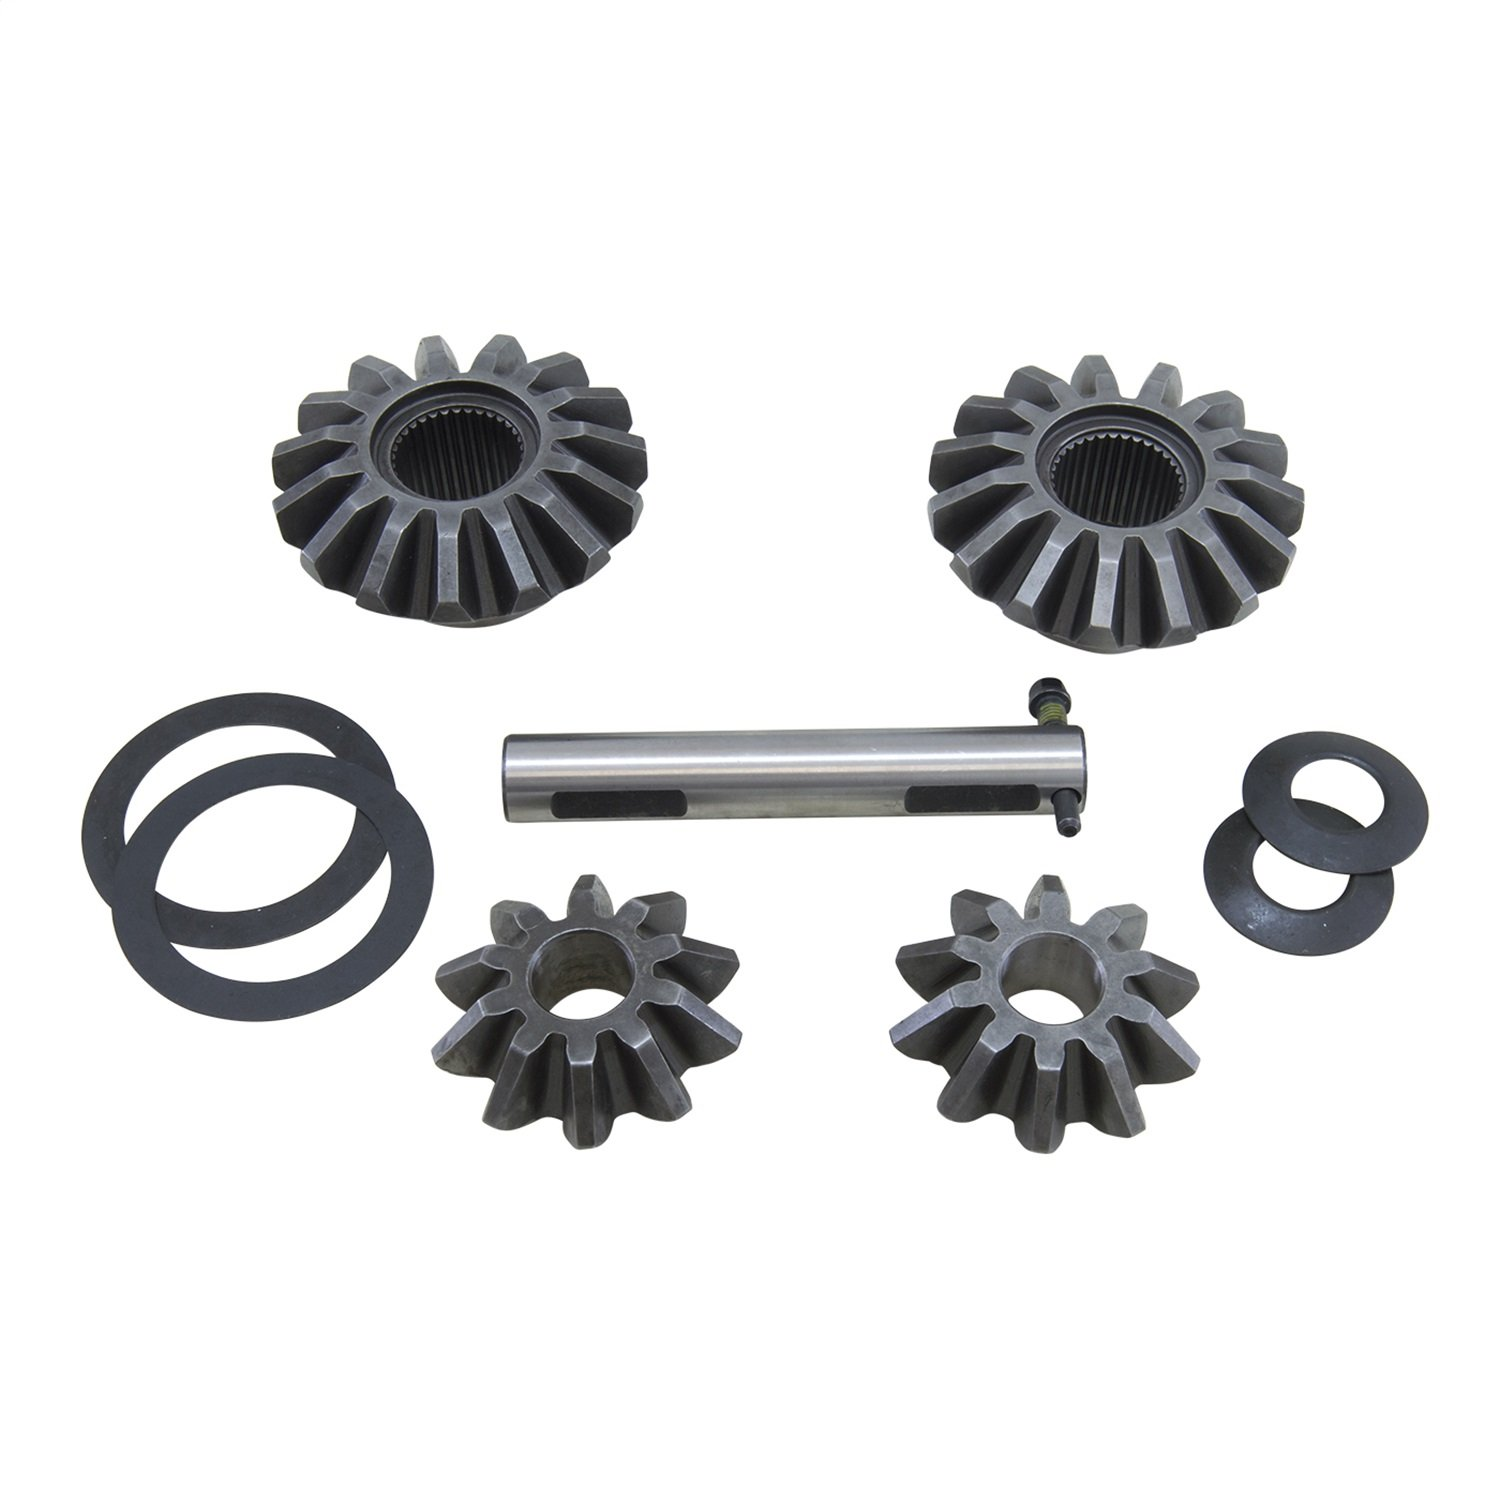 USA Standard Gear (ZIKF9.75-S-34) Spider Gear Set for Ford 9.75' Differential